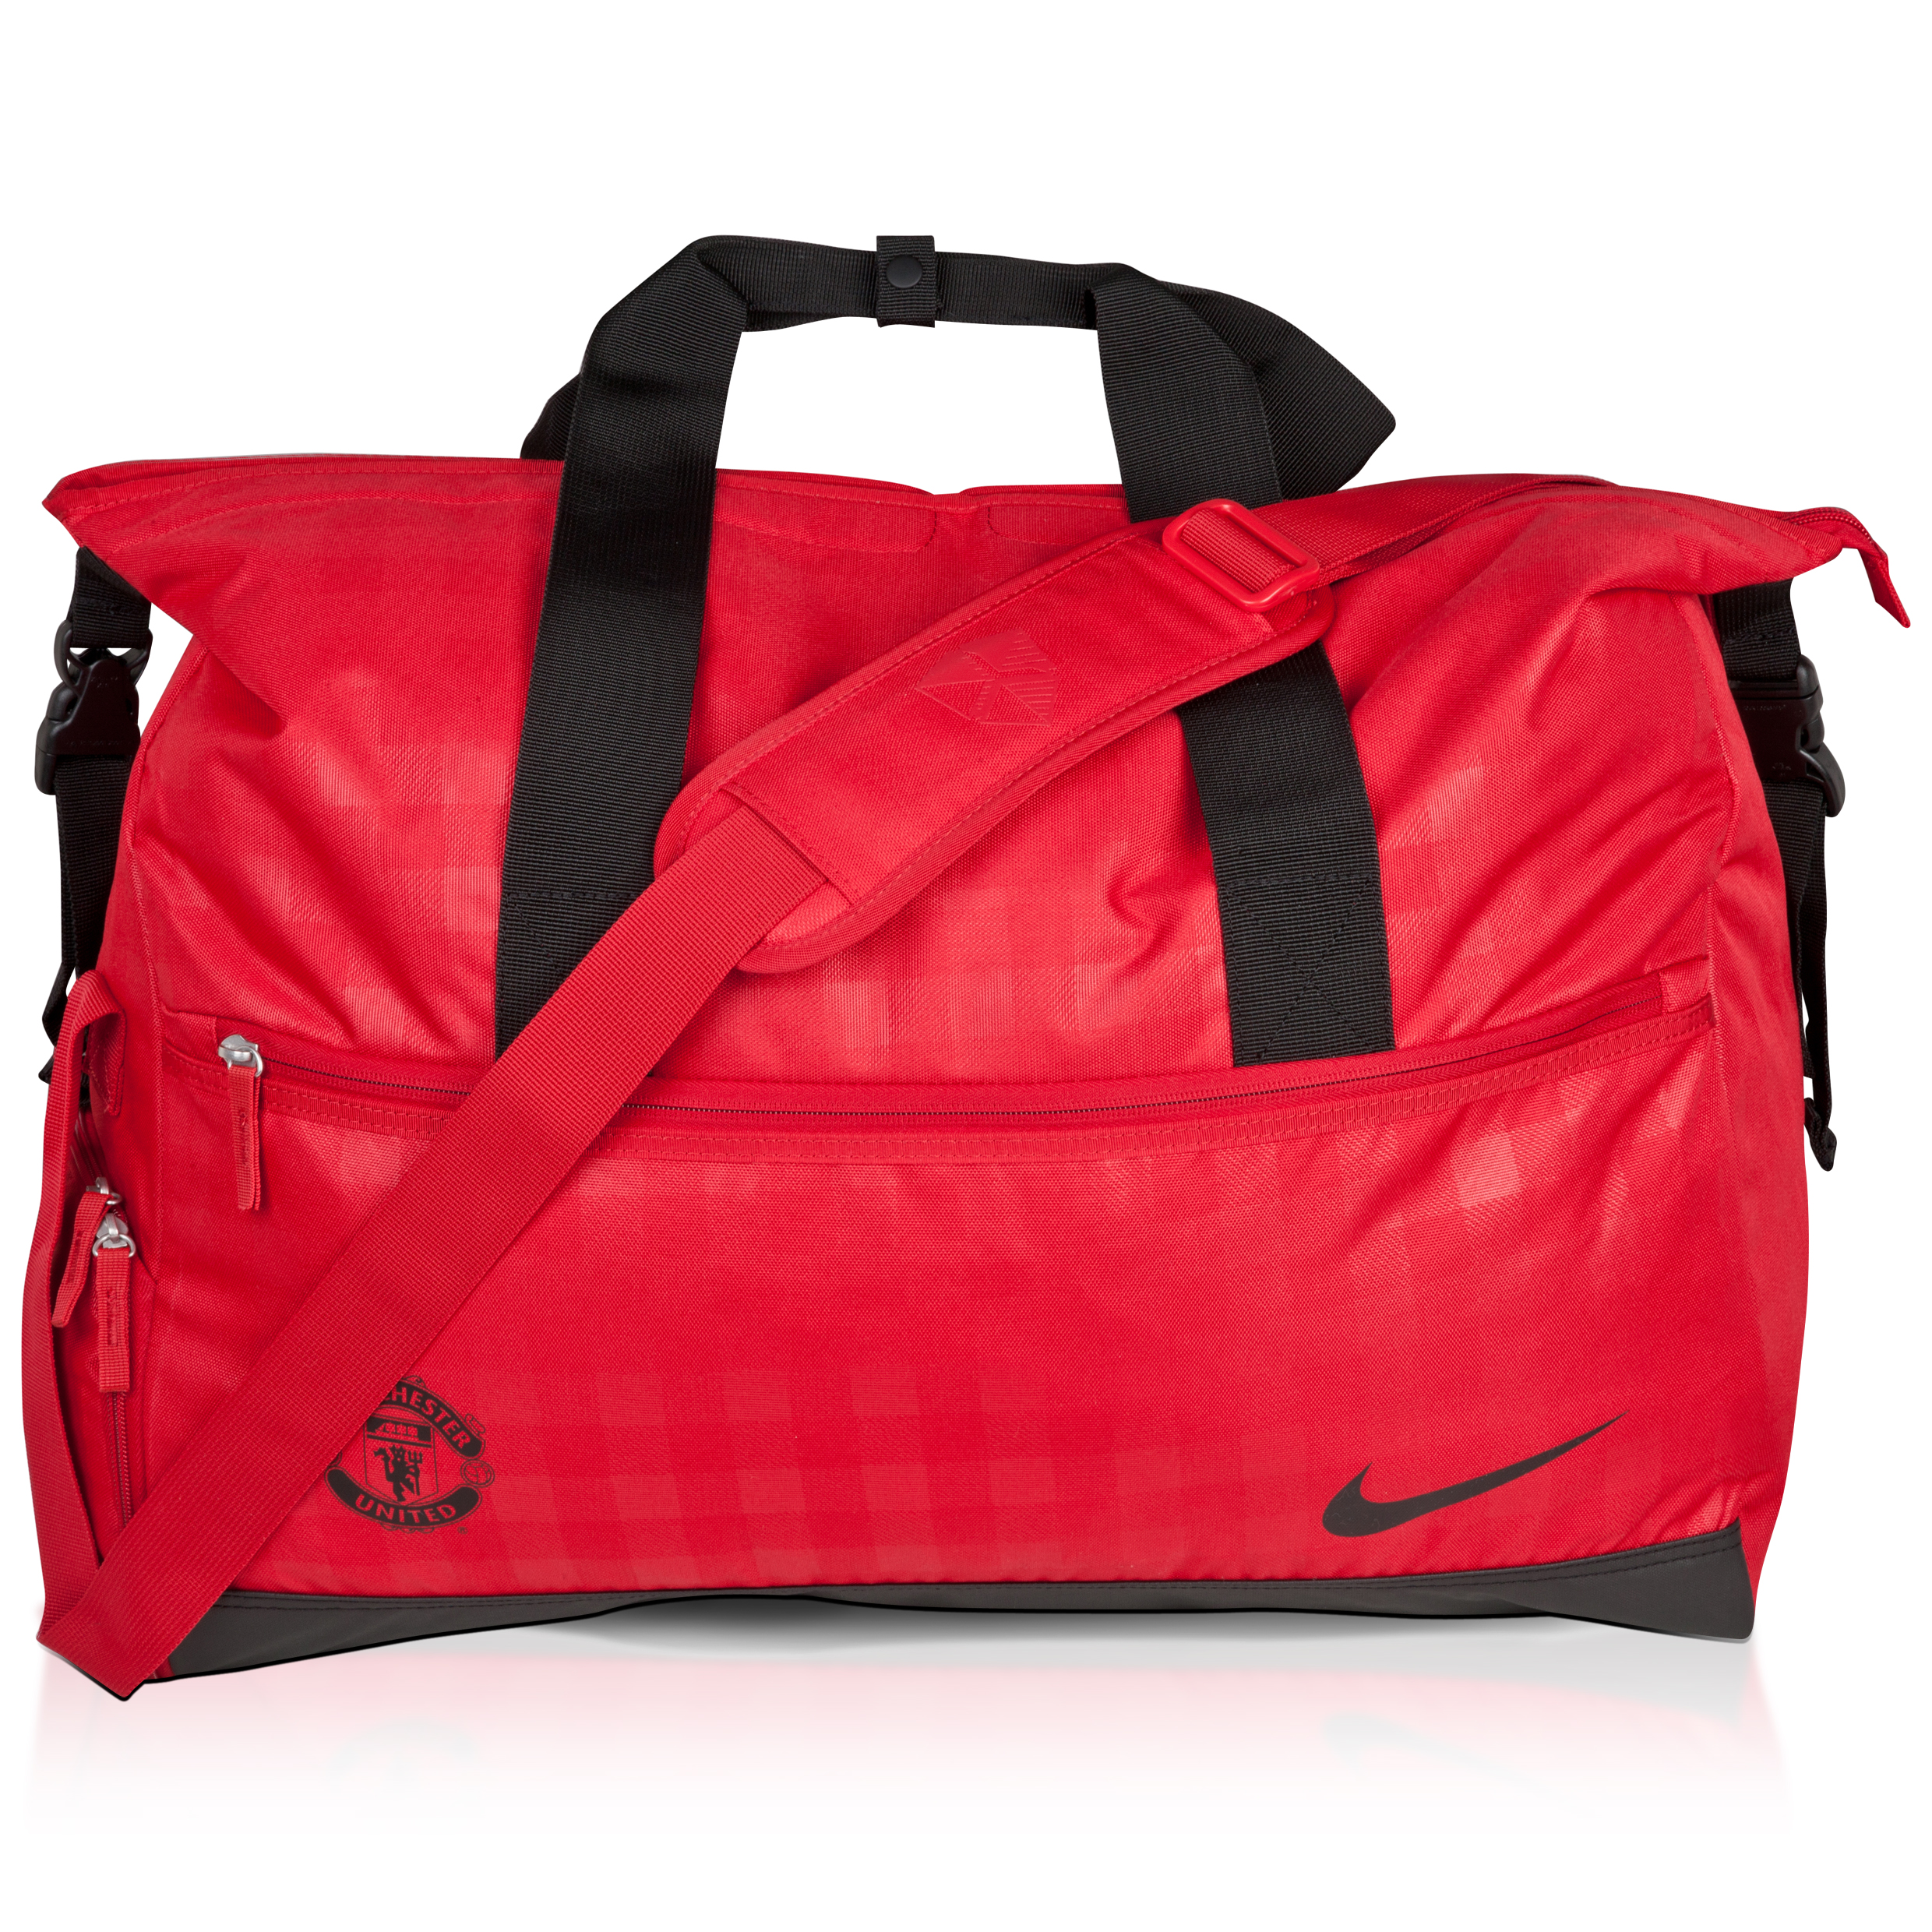 Manchester United Allegiance Duffle Bag - Varsity Red/Black